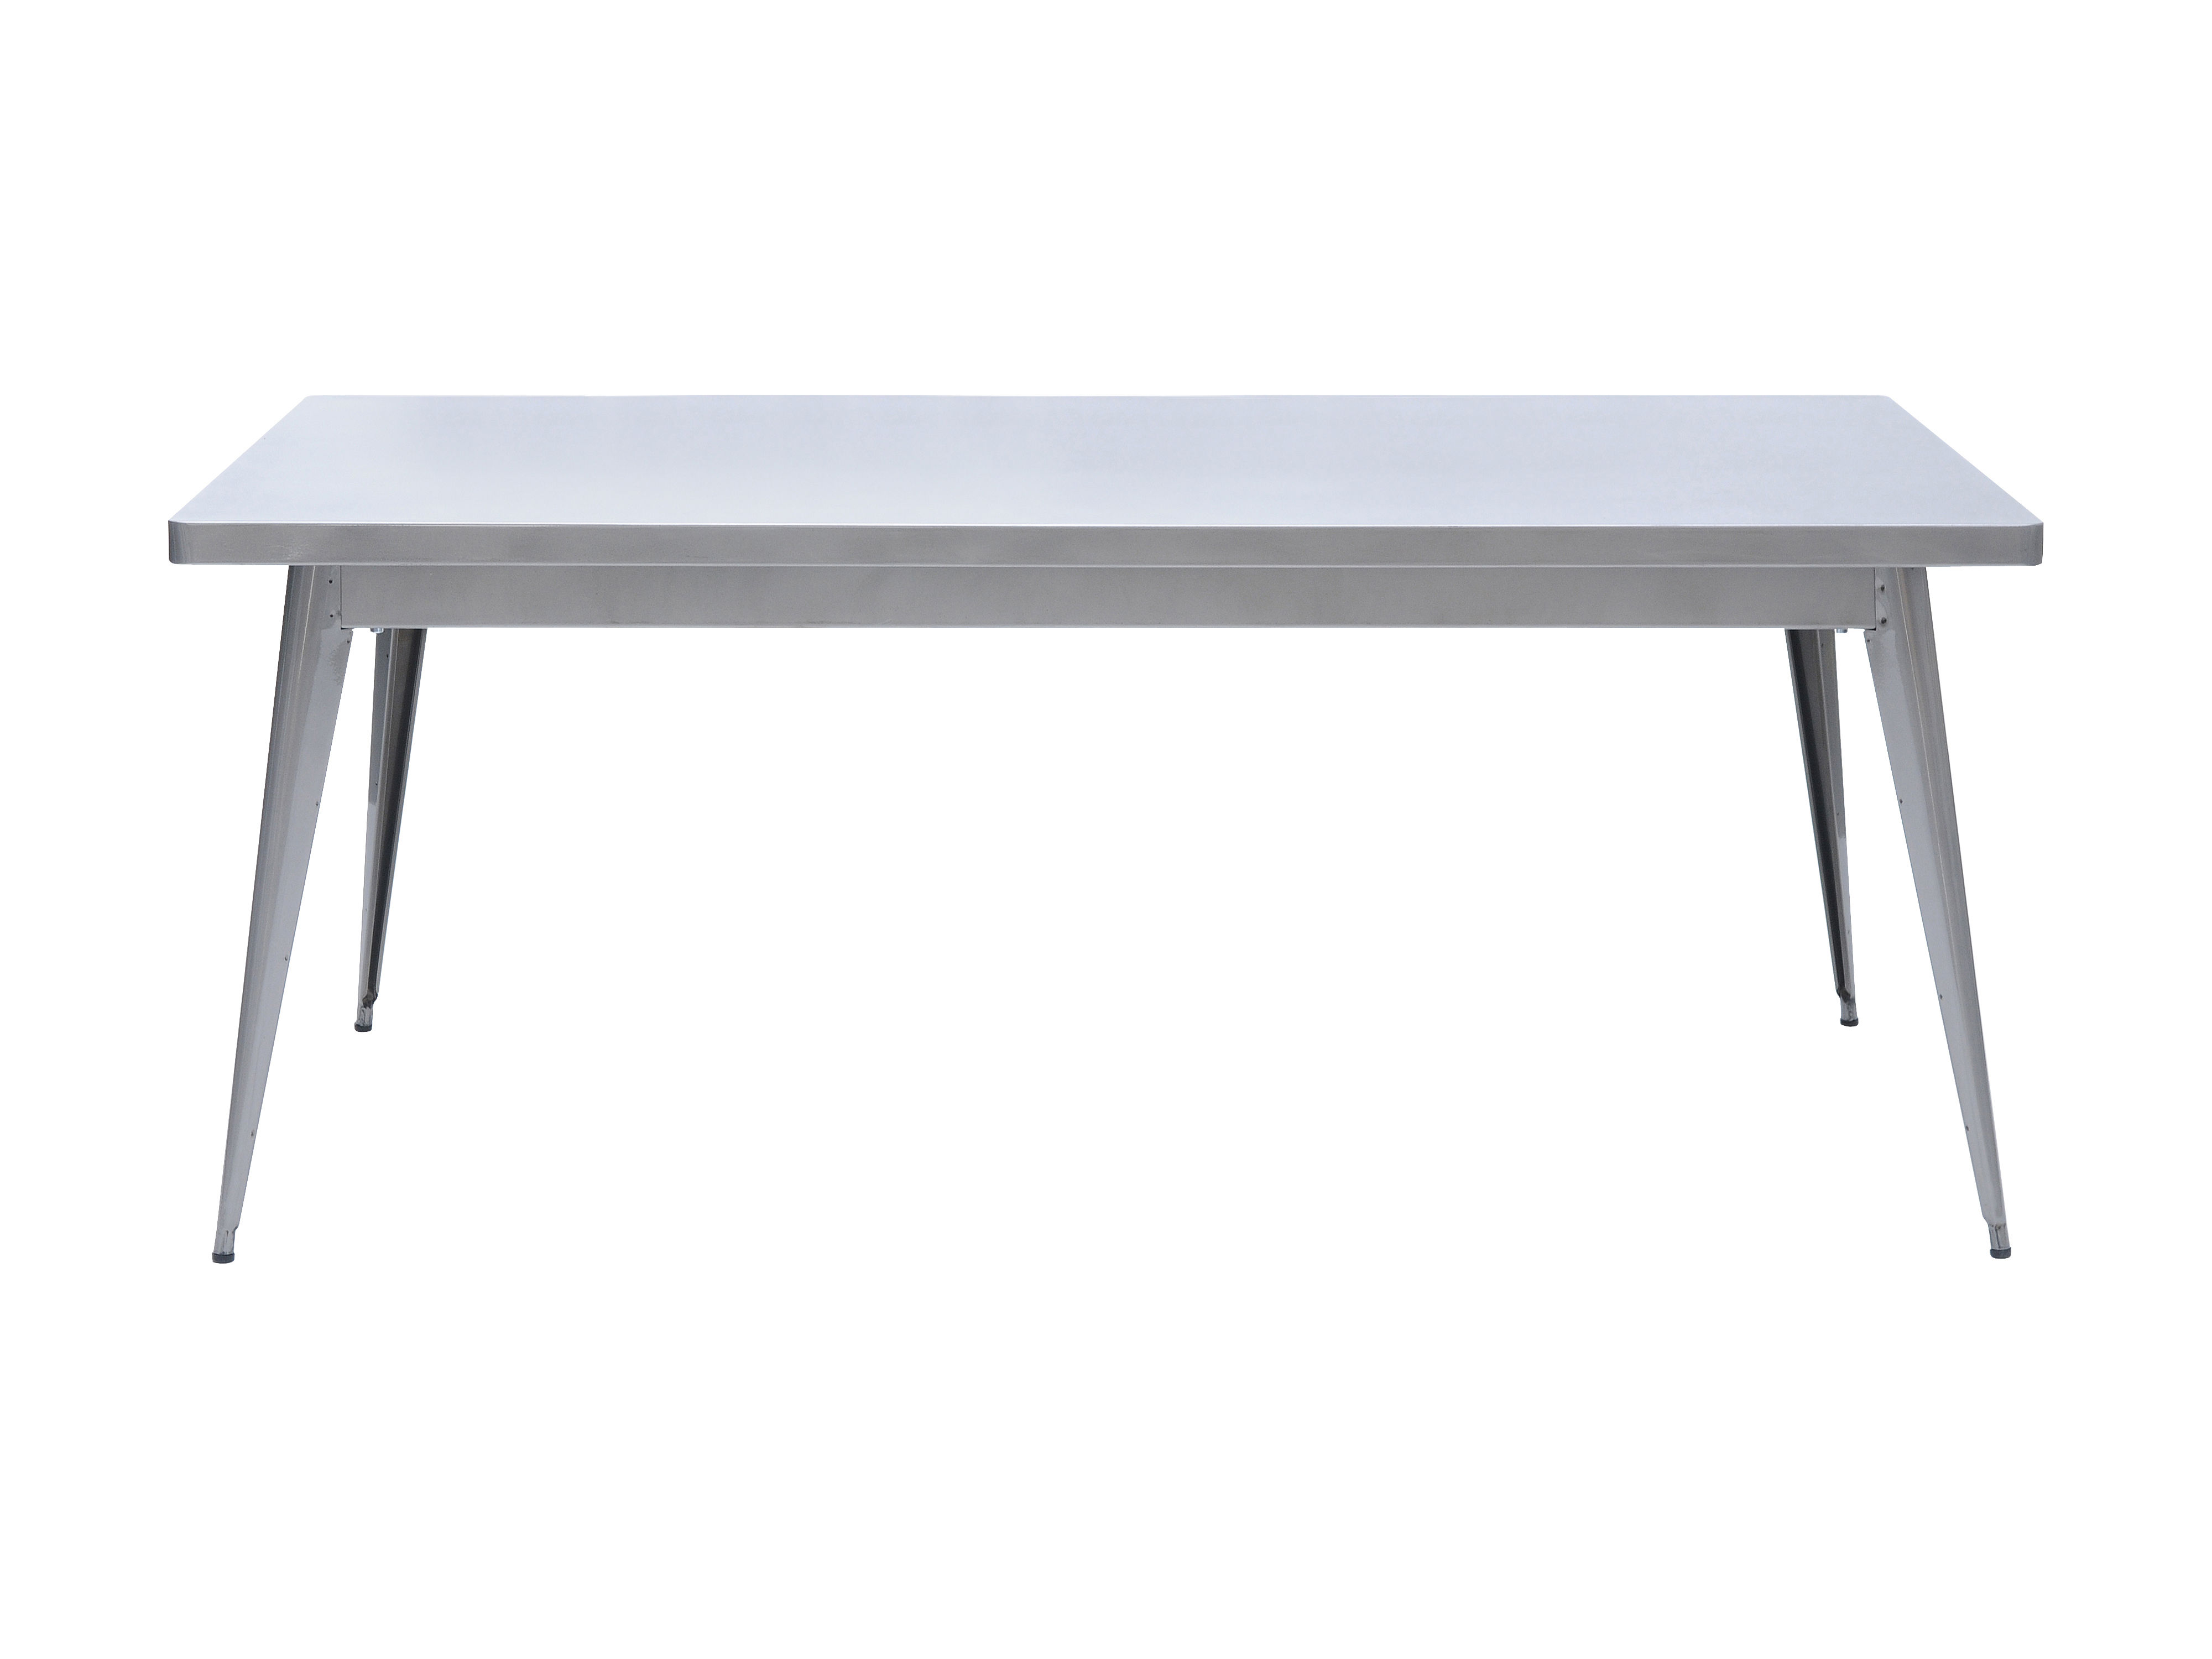 Scopri tavolo 55 l 130 x larg 70 cm 130 x 70 cm for Table de salle a manger 16 personnes